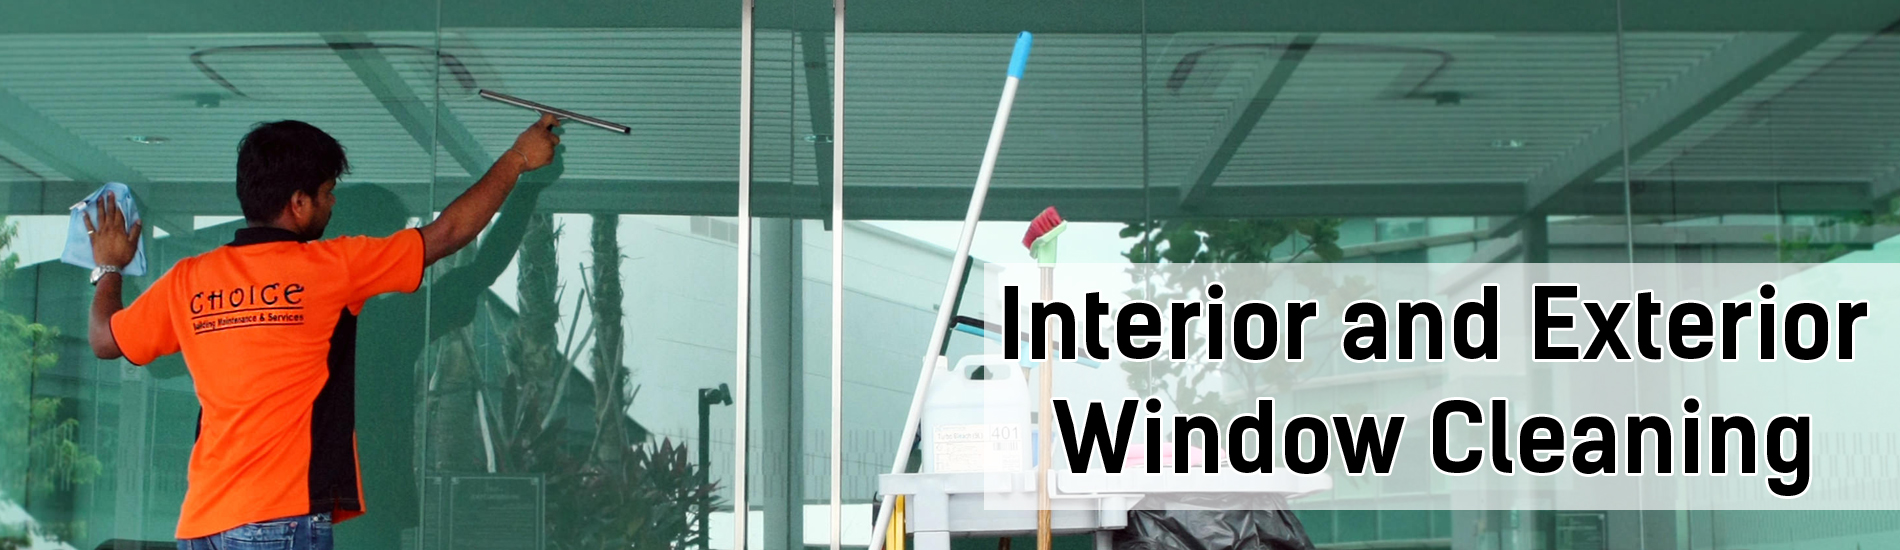 Interior and Exterior Window Cleaning